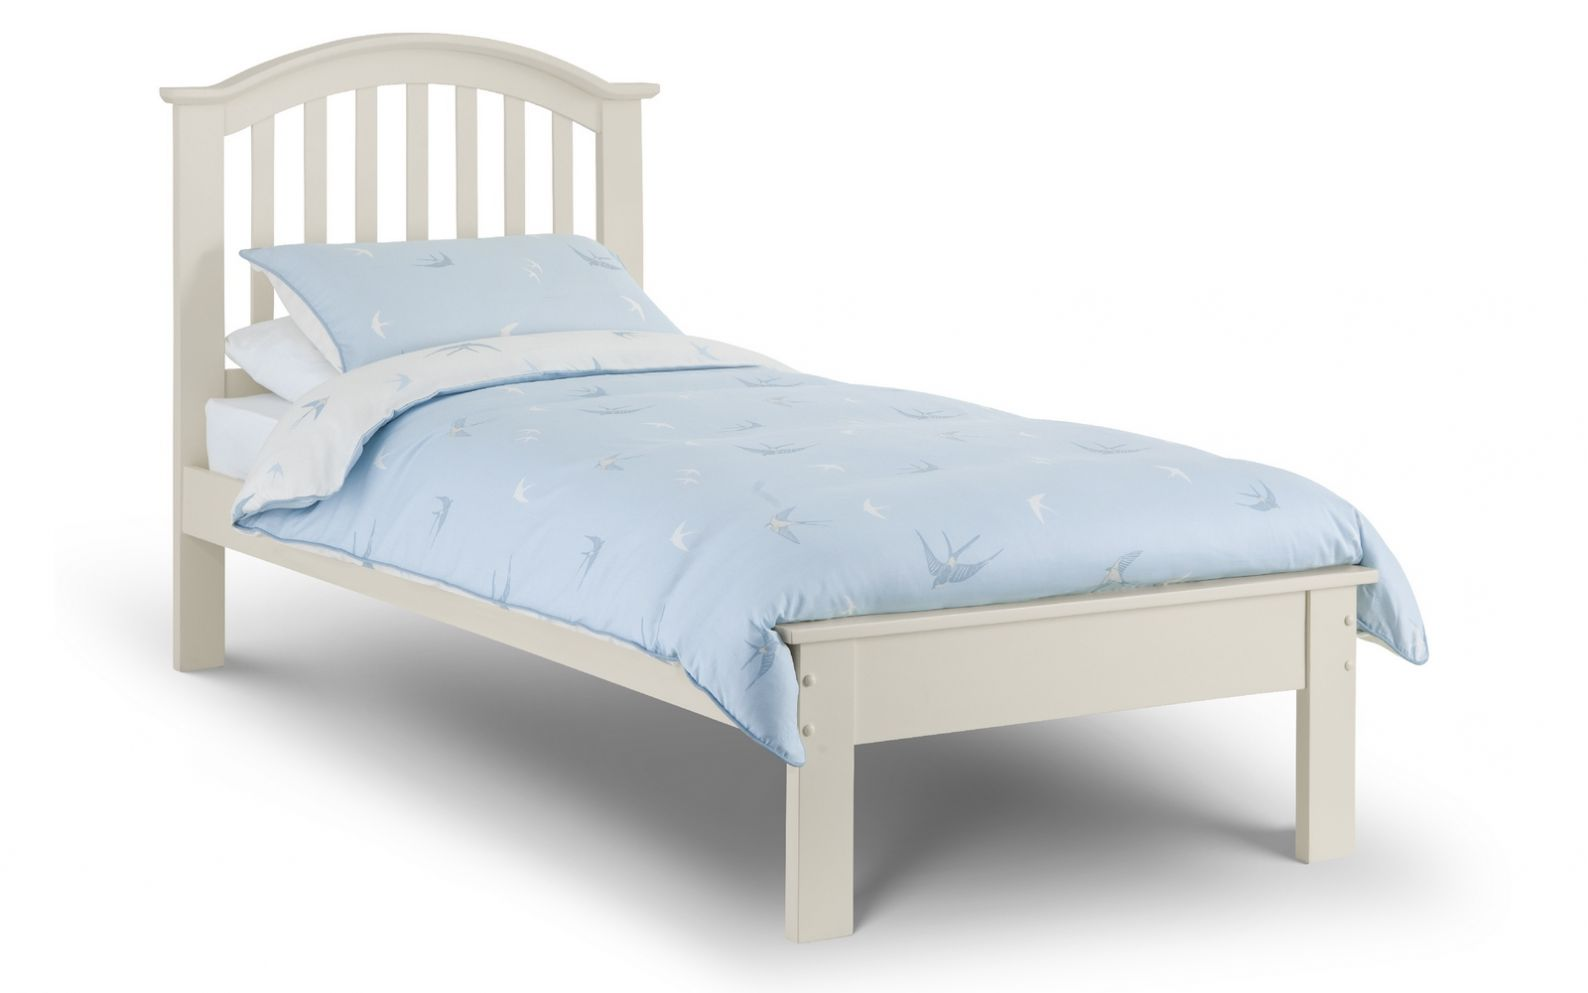 single woood cuckooland brand beds de bed white in with max headboard kids eekhoorn storage